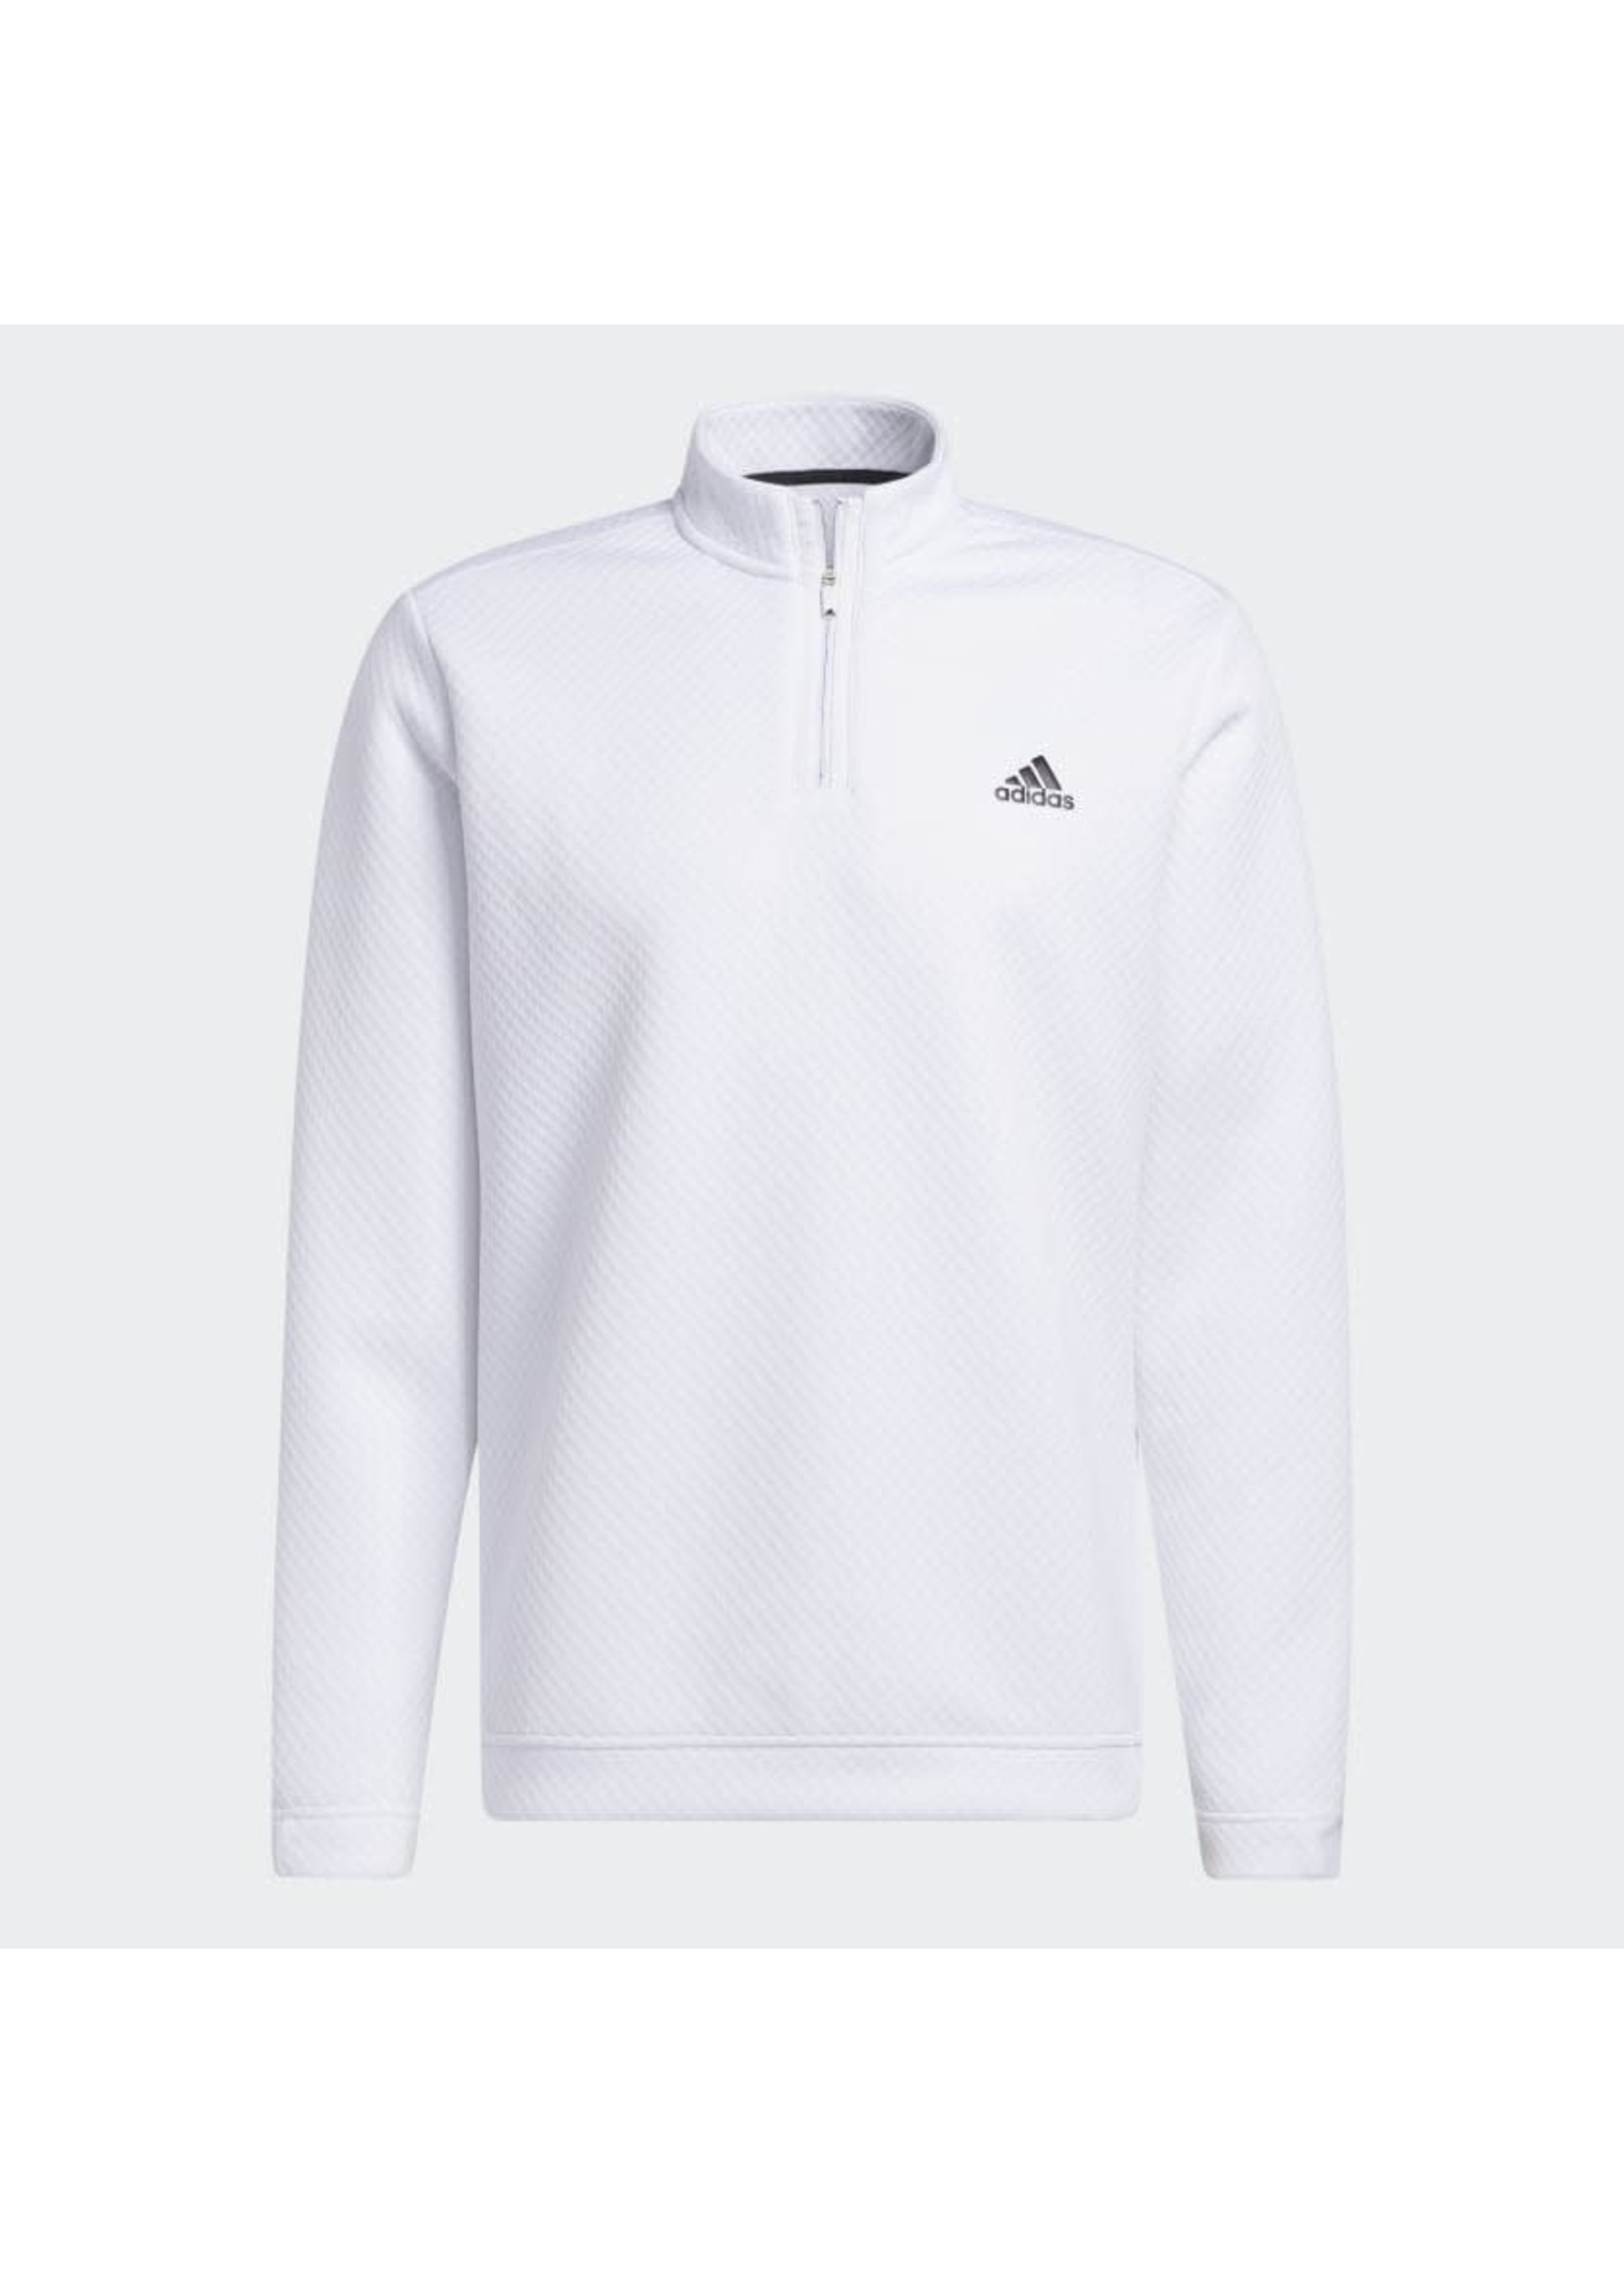 Adidas Adidas Prime Green Water Resistant Mens Golf Top (2021) - White